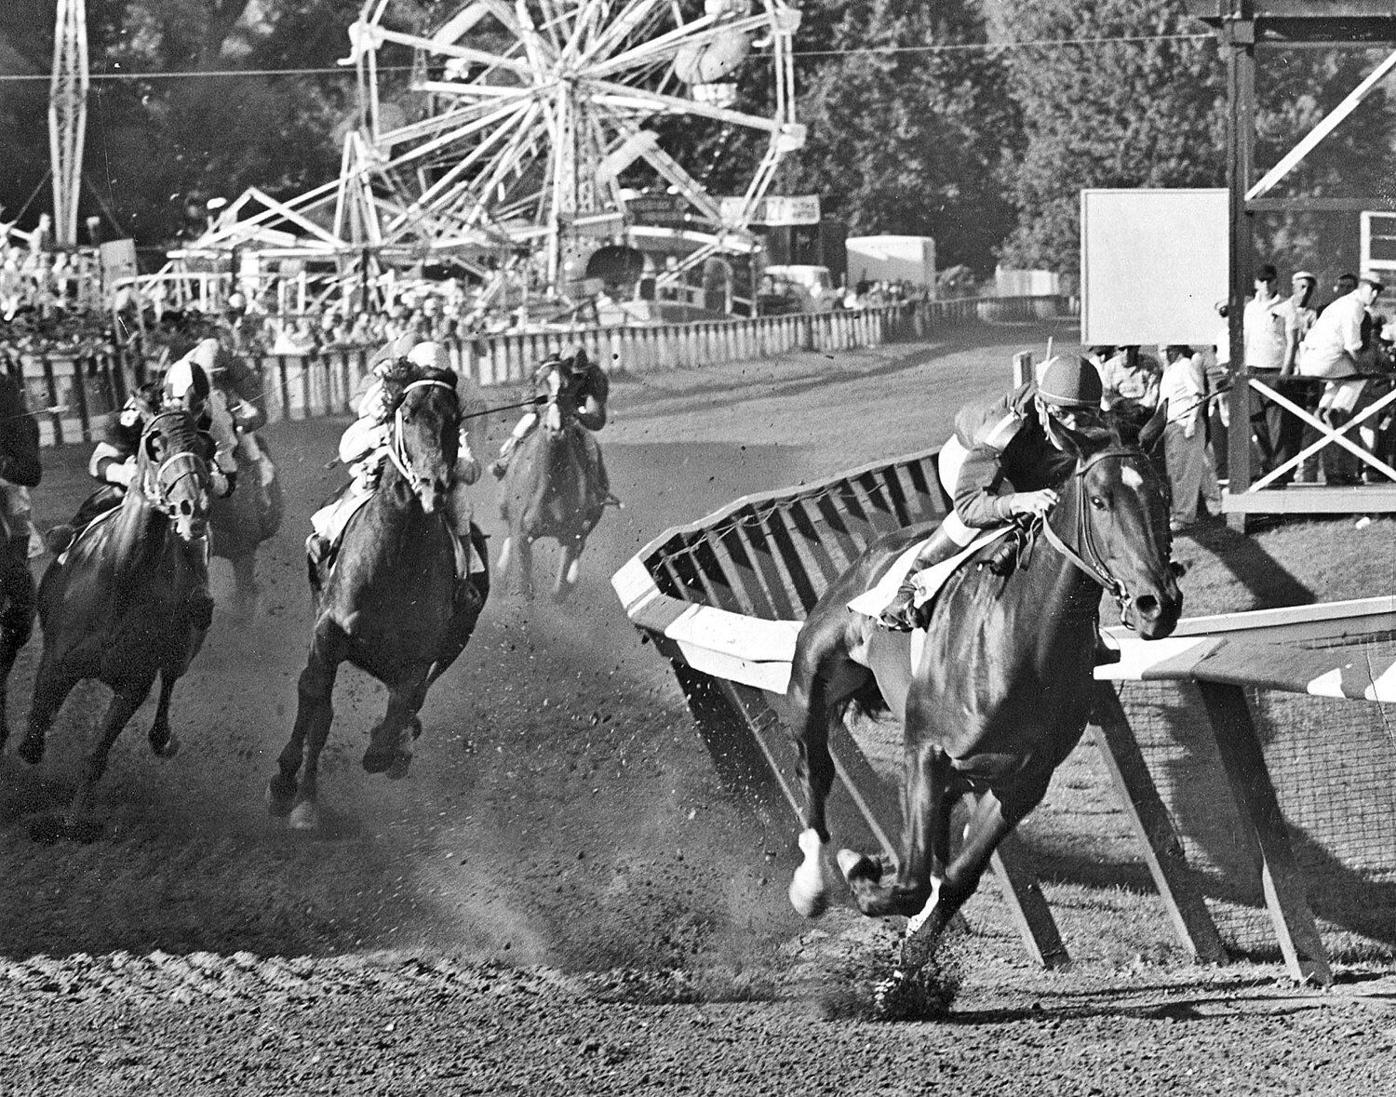 Suffolk Downs likely 'grandfathered' at Great Barrington Fairgrounds, but questions remain